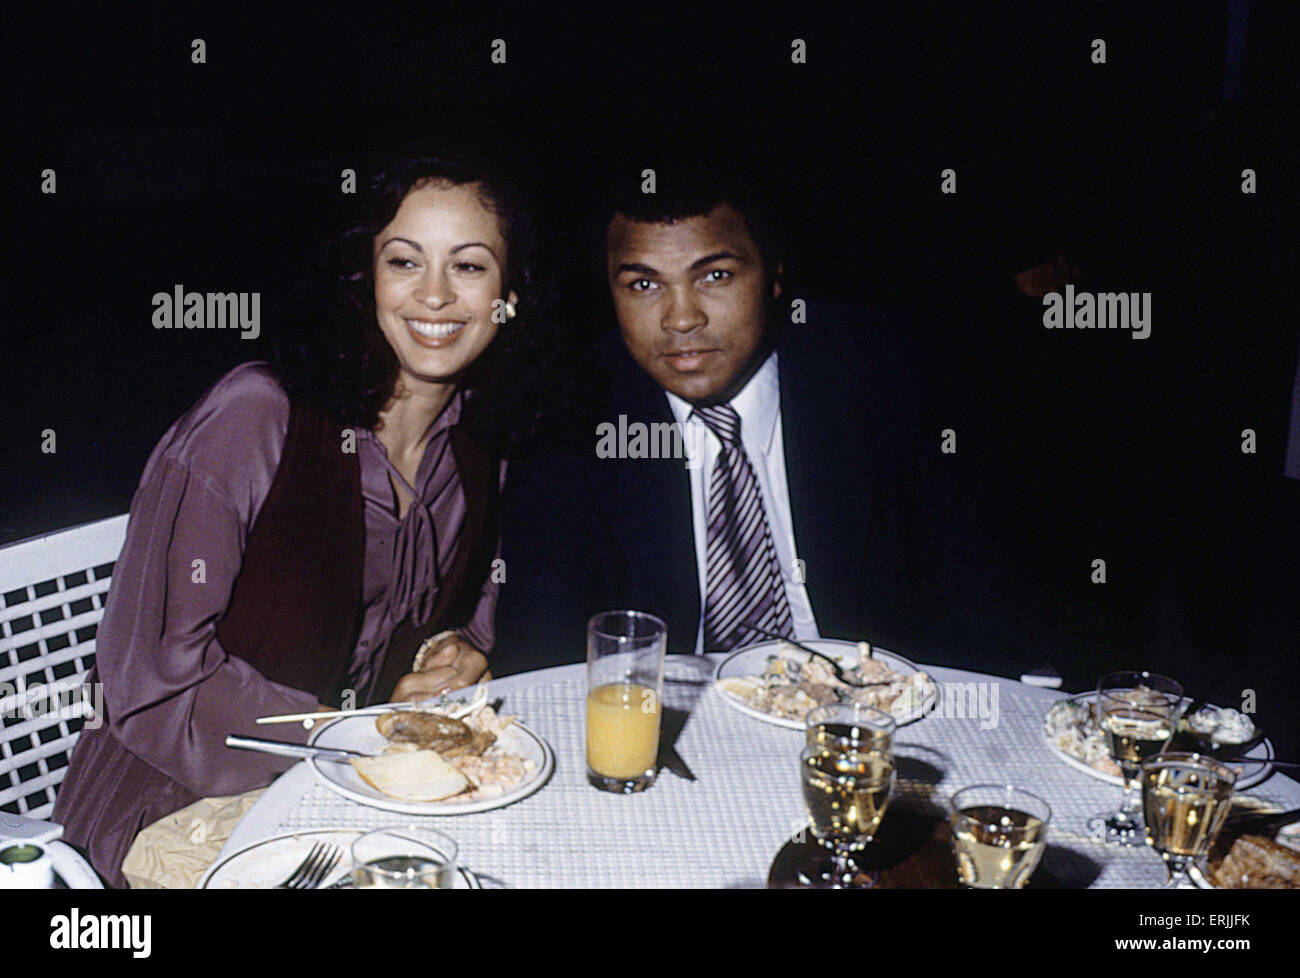 Muhammad ali and second wife veronica at a gala in london 4th june muhammad ali and second wife veronica at a gala in london 4th june 1979 thecheapjerseys Choice Image